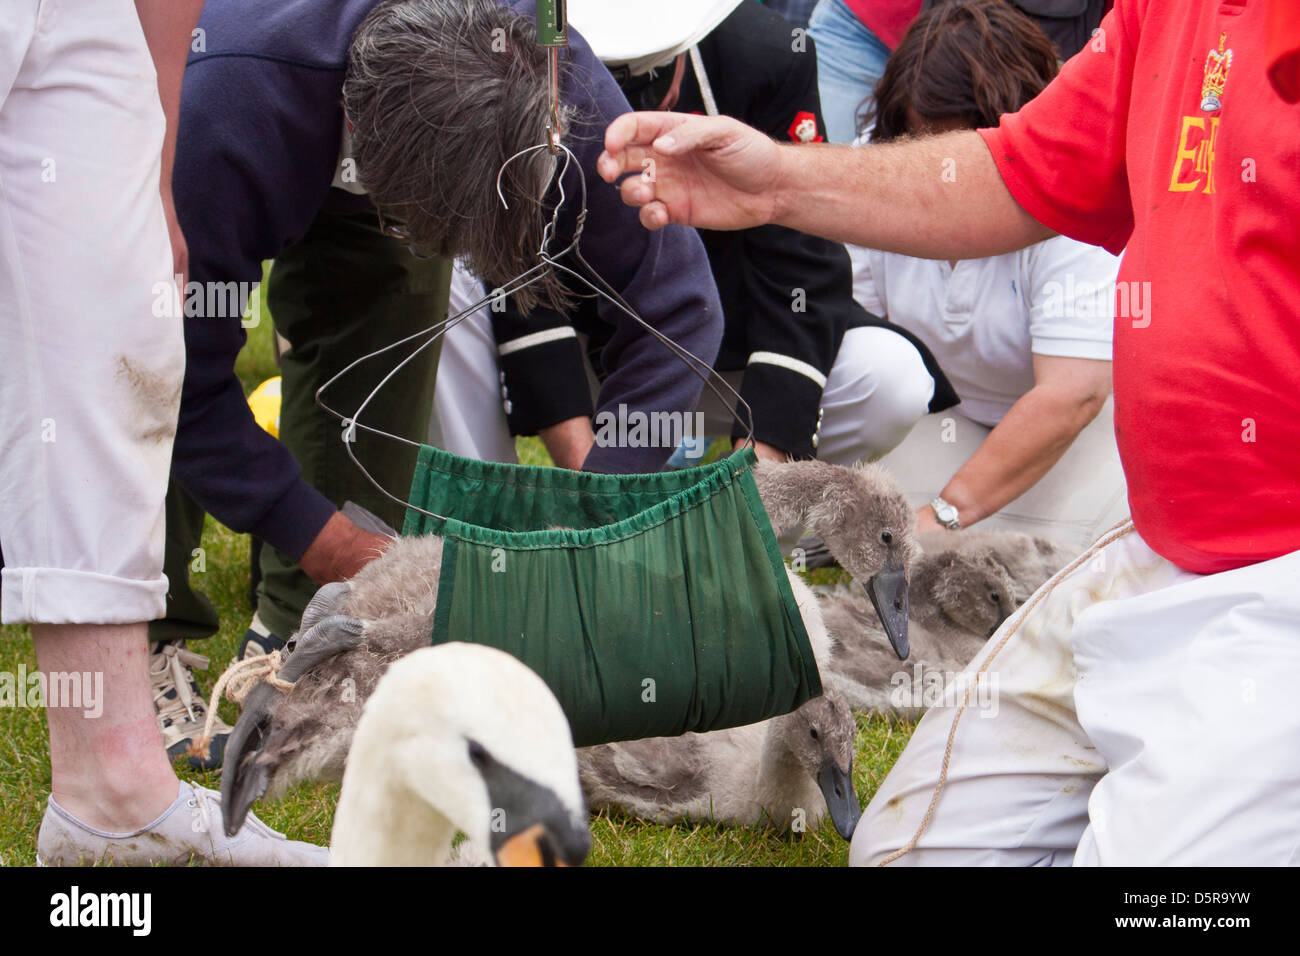 A member of The Queen's Swan Uppers weighs a cygnet as part of the annual swan upping ceremony along the river - Stock Image